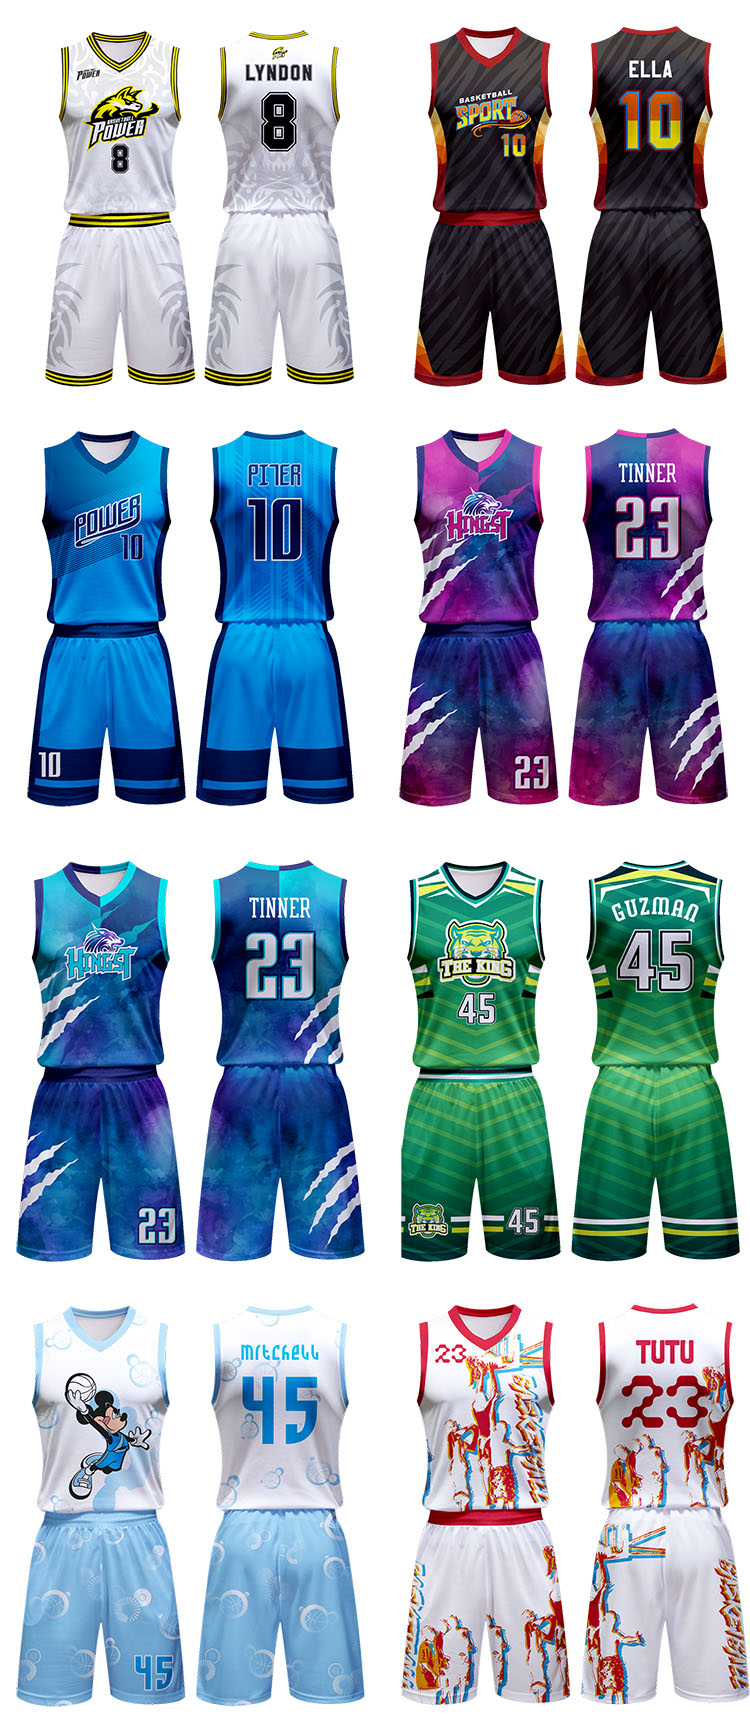 Basketball Uniform Beste Neueste Custom Sublimation Blank Reversible Dry Fit Basketball Jersey Design 2019 Günstige Großhandel China